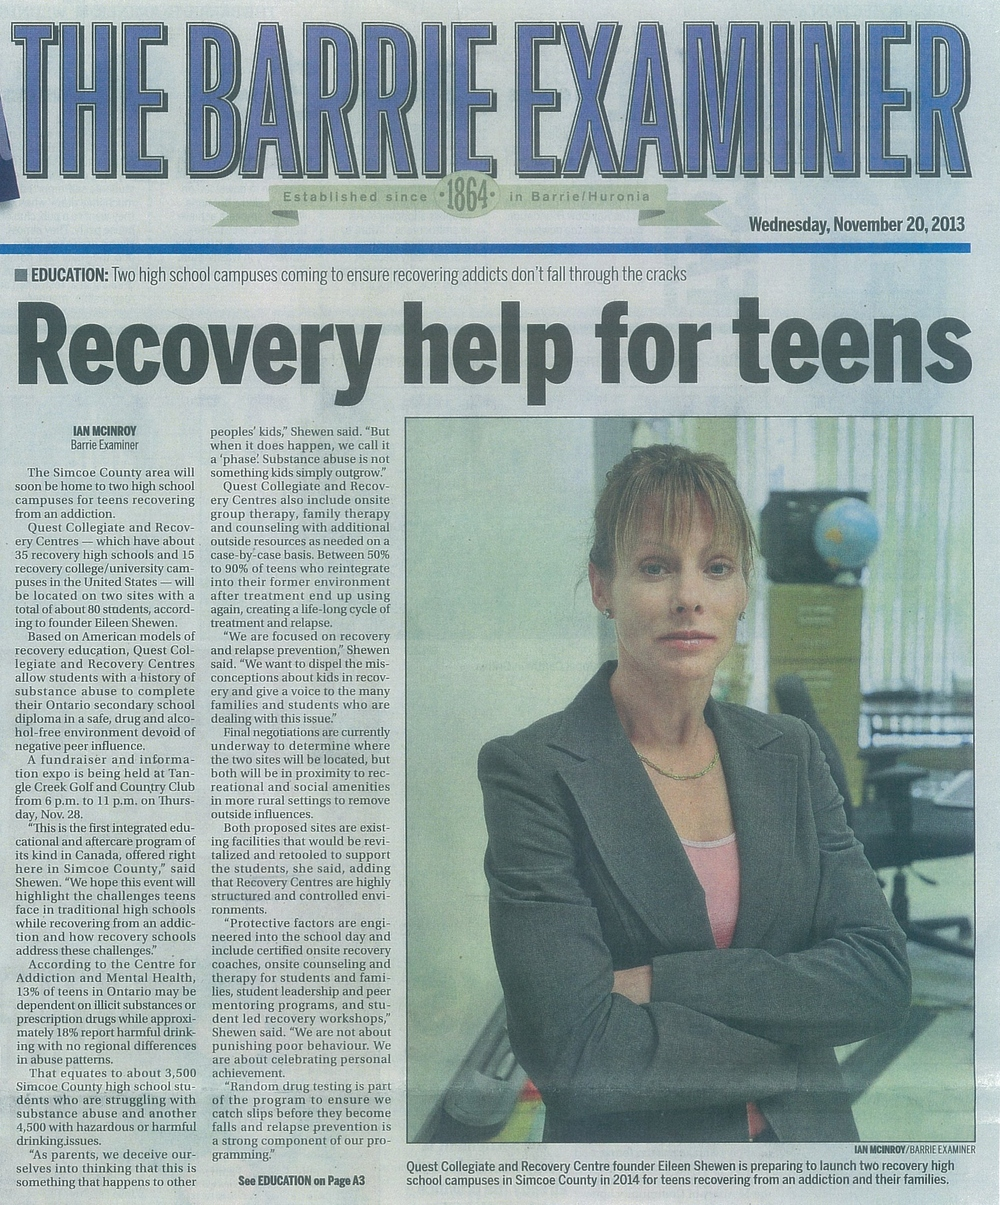 recovery help for teens.jpg